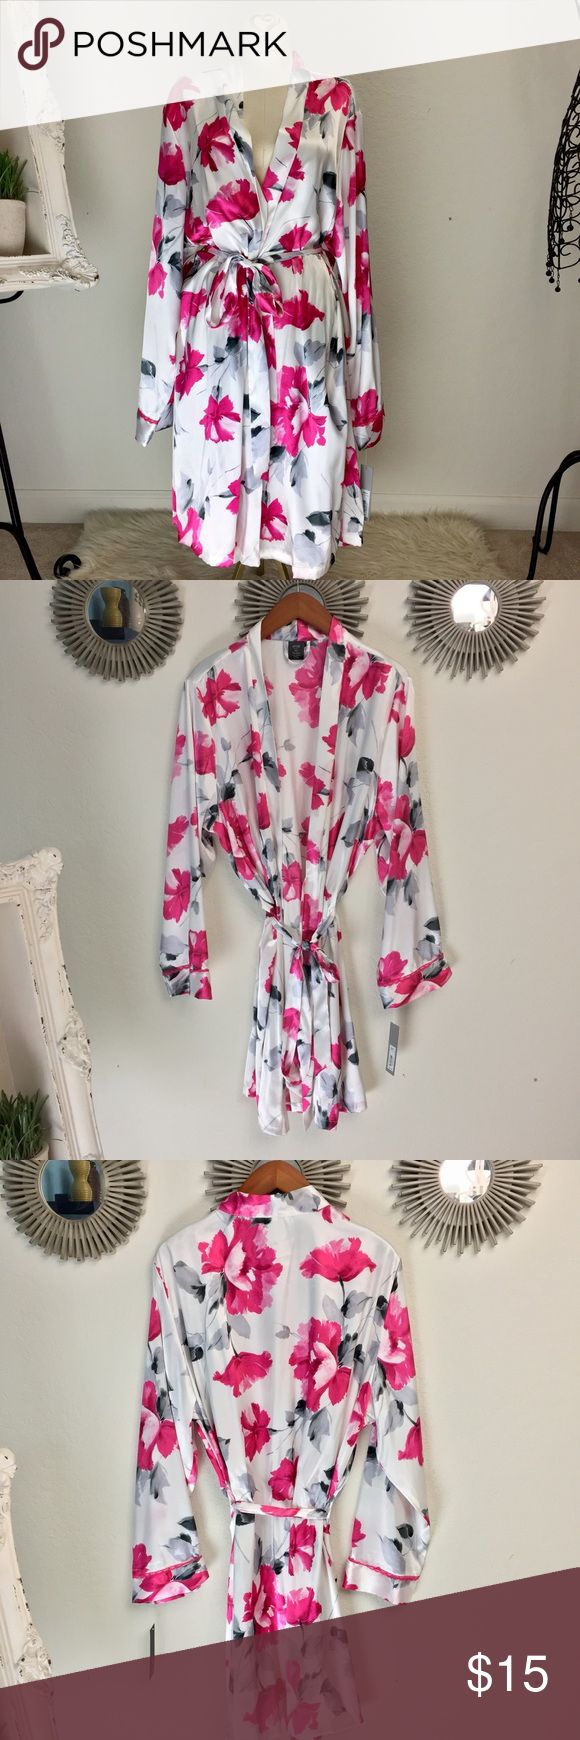 """New with tags Floral satin kimono robe by APT.9 🌷 Beautiful satin floral kimono robe. Gray, white and pink. Size XXL - can be tied with the belt to fit a size or so smaller. 36"""" length 22"""" pit to pit. Gorgeous!!! 💌 - open to offers. 🛒 bundle for a steal deal 📦 same or next day shipping Apt. 9 Intimates & Sleepwear Robes"""